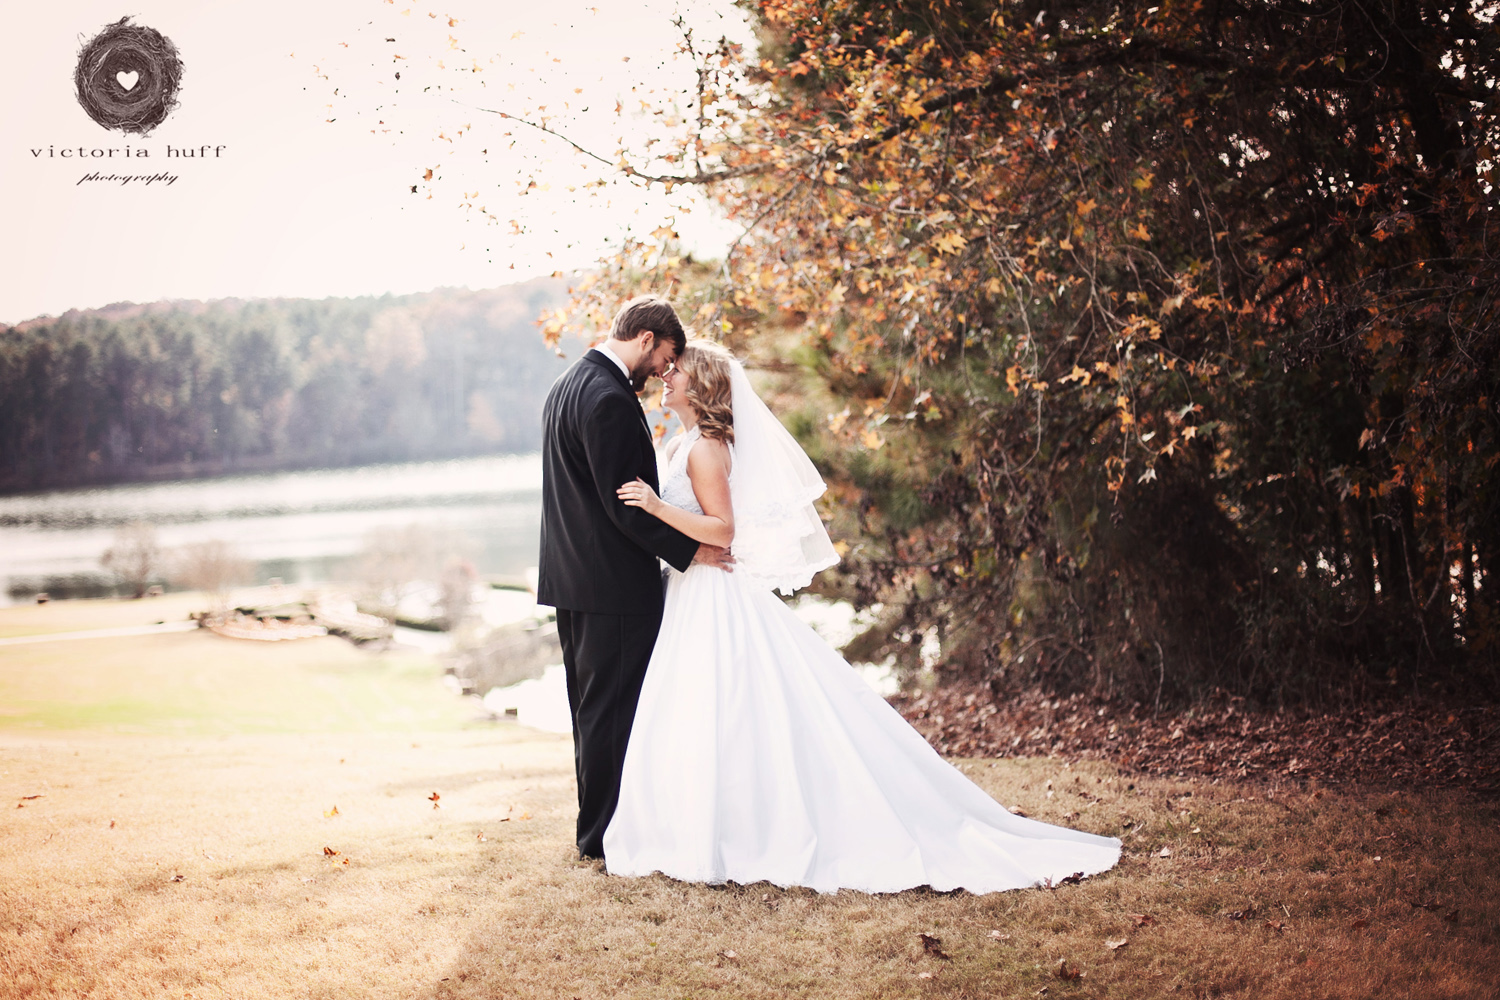 Wedding-Photography-Chelsea-Futrell-Chris-Deans-Gracewood-Athens-Bishop-Oconee-Georgia-outdoor-wedding-fall-2.jpg